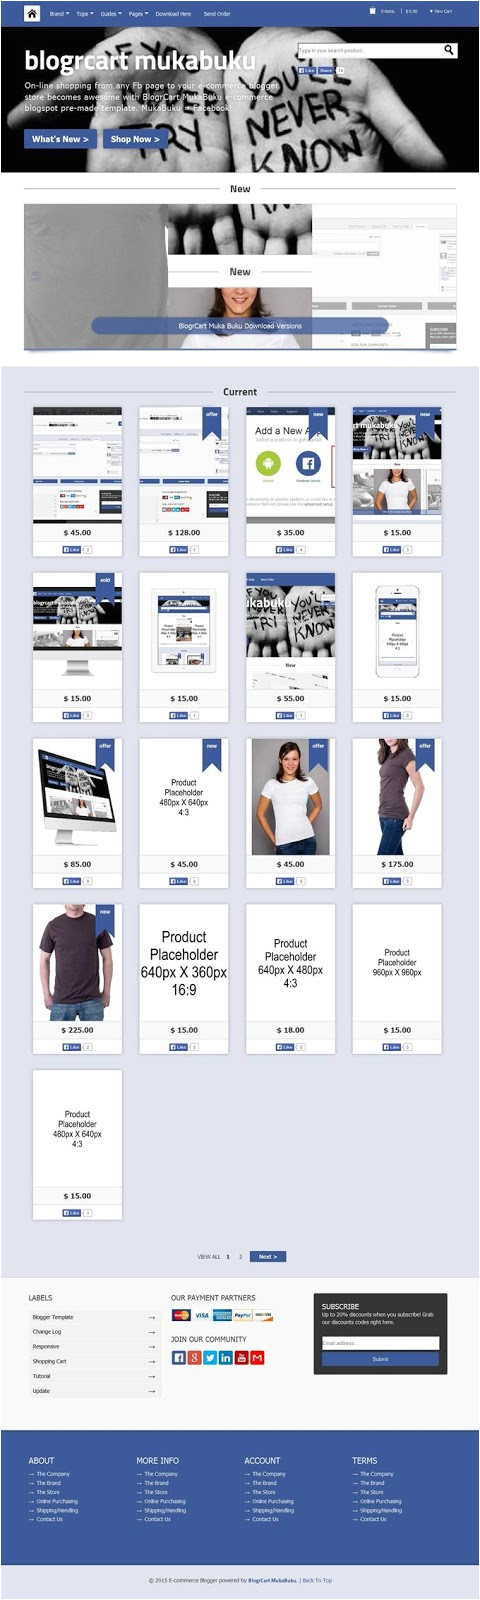 ecommerce blogger templates